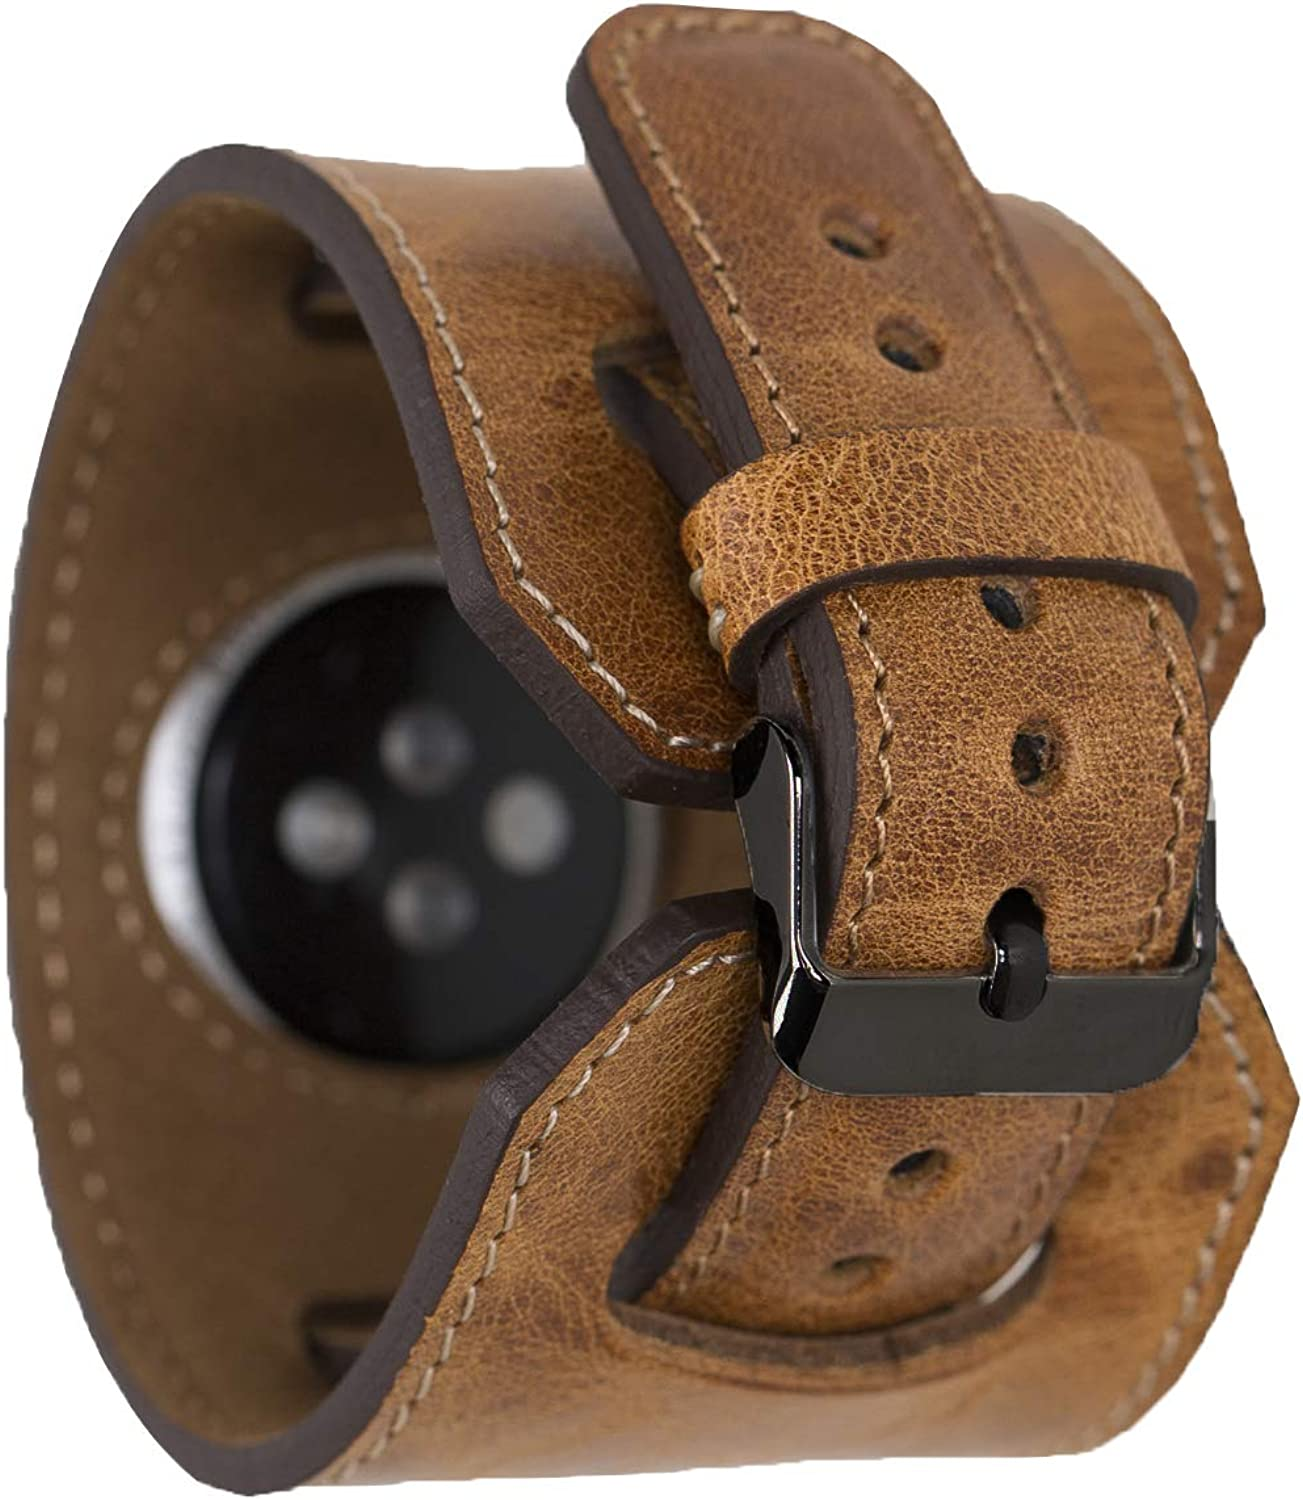 Genuine Leather Cuff Style Band 44mm 42mm 40mm 38mm, Leather Band for Women Men Strap Bracelet for iWatch series 5 4 3 2 1